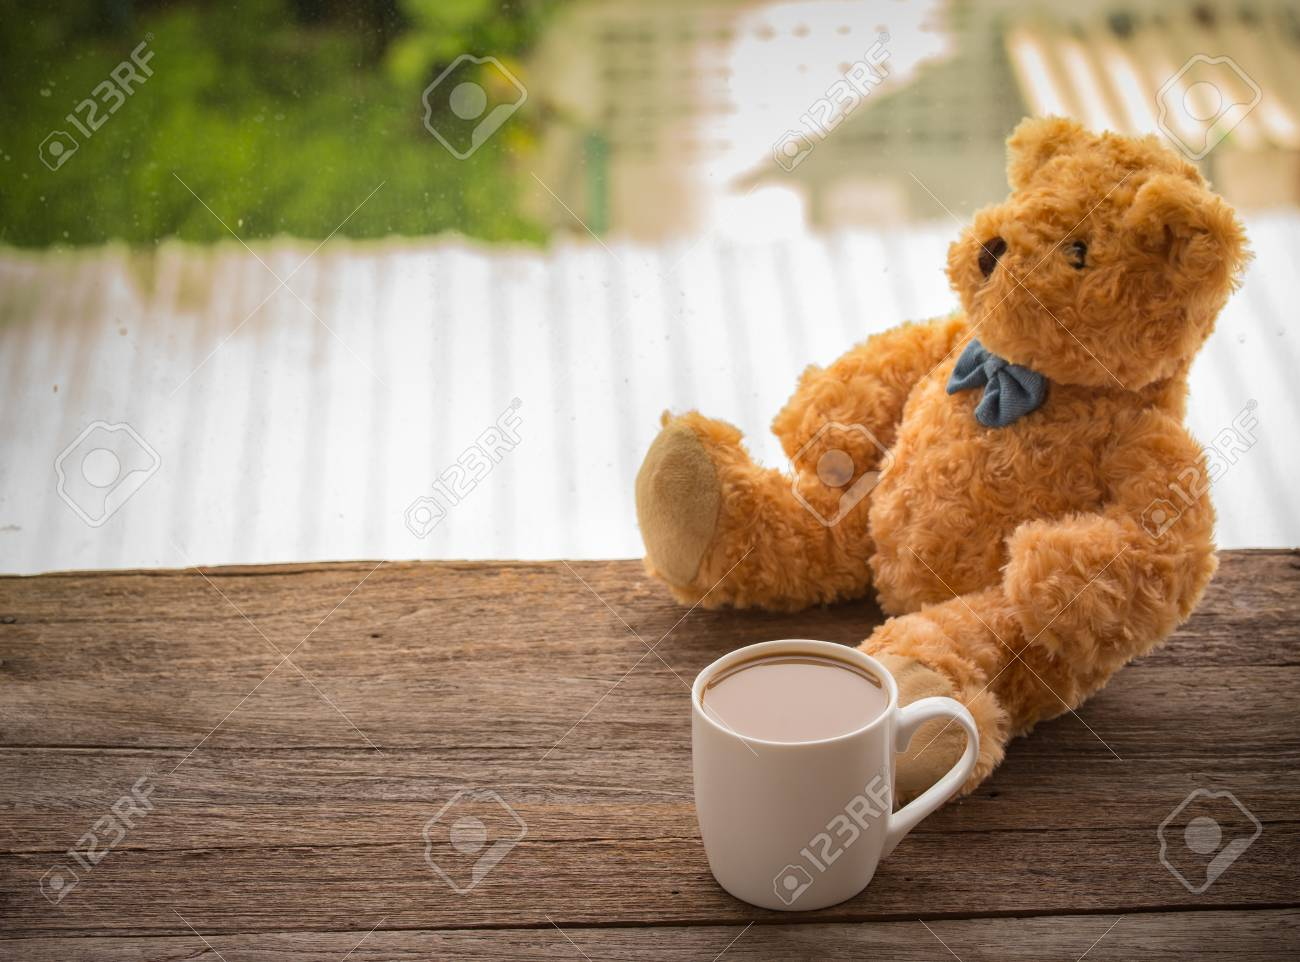 Radiant Teddy Time Stock Photo Coffee Cup Molasses Bear Coffee Cups Smokey Mts Townsend Black Bear Diner Coffee Cups Coffee Cup Teddy Time Stock furniture Bear Coffee Cup